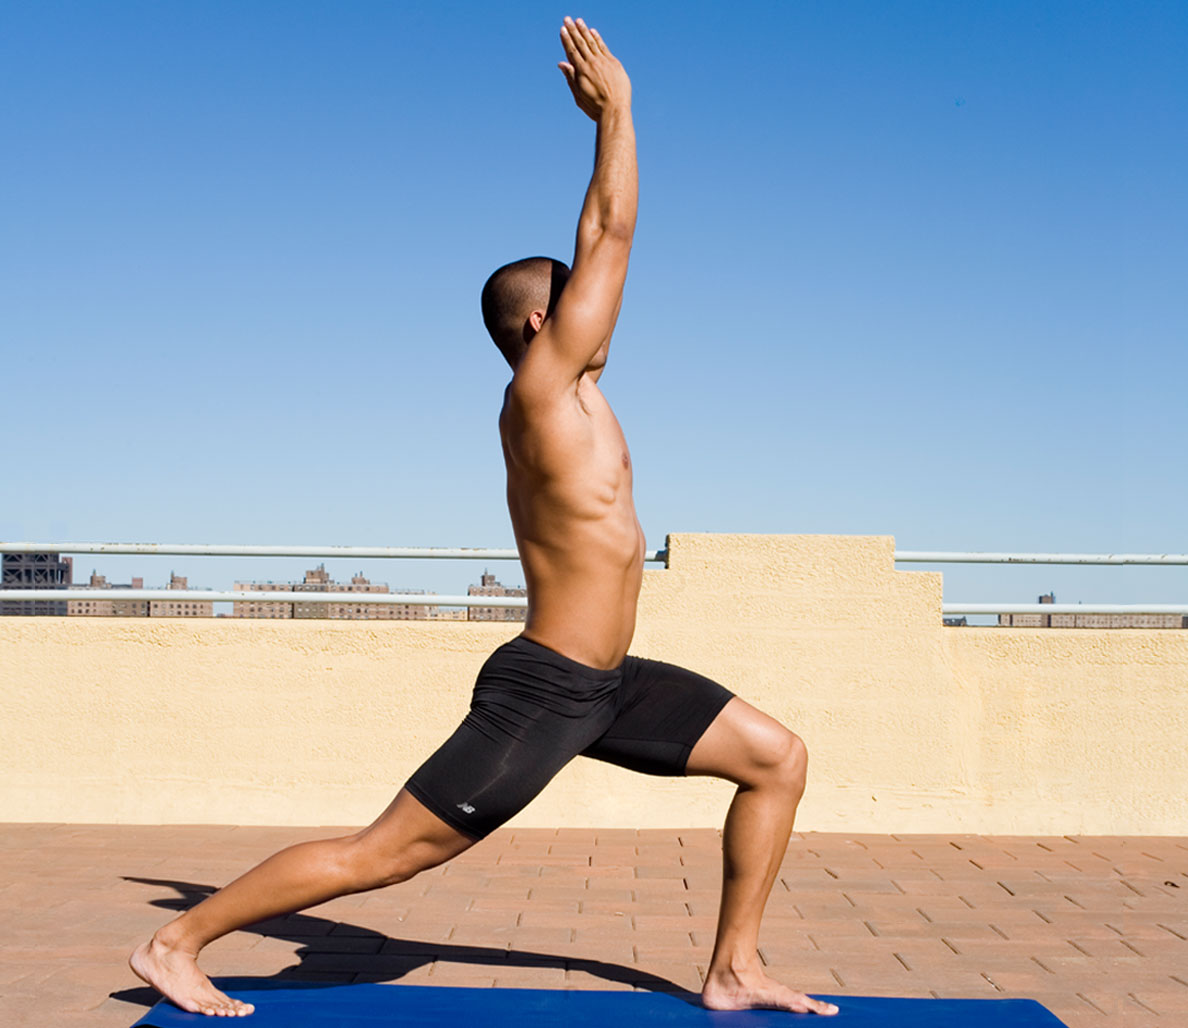 The Top 10 Yoga Poses for Men